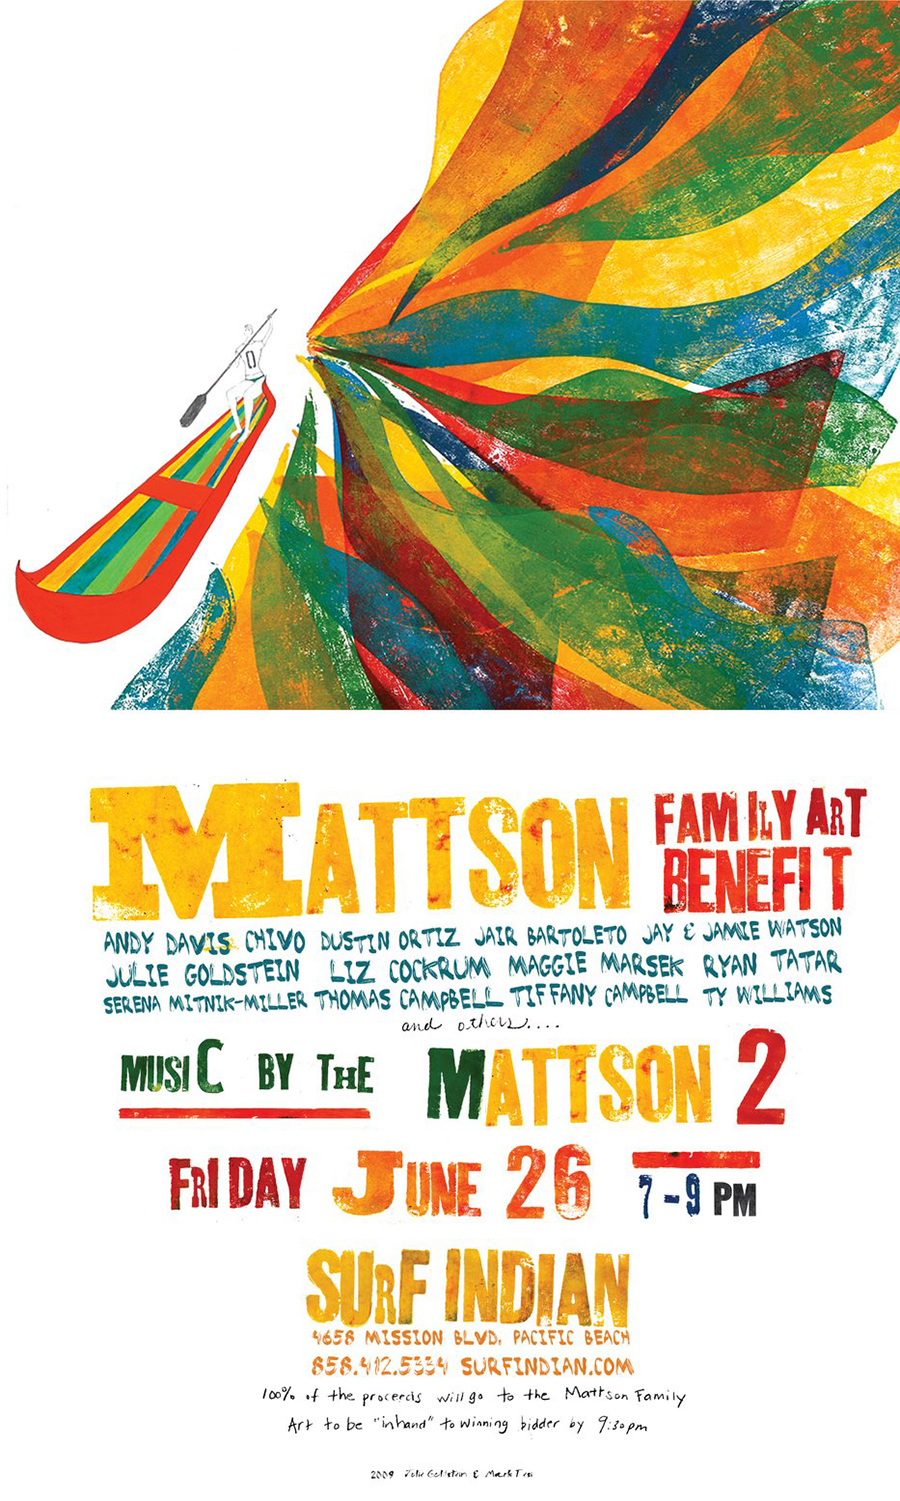 Mattson Family Art Benefit – June 26th San Diego